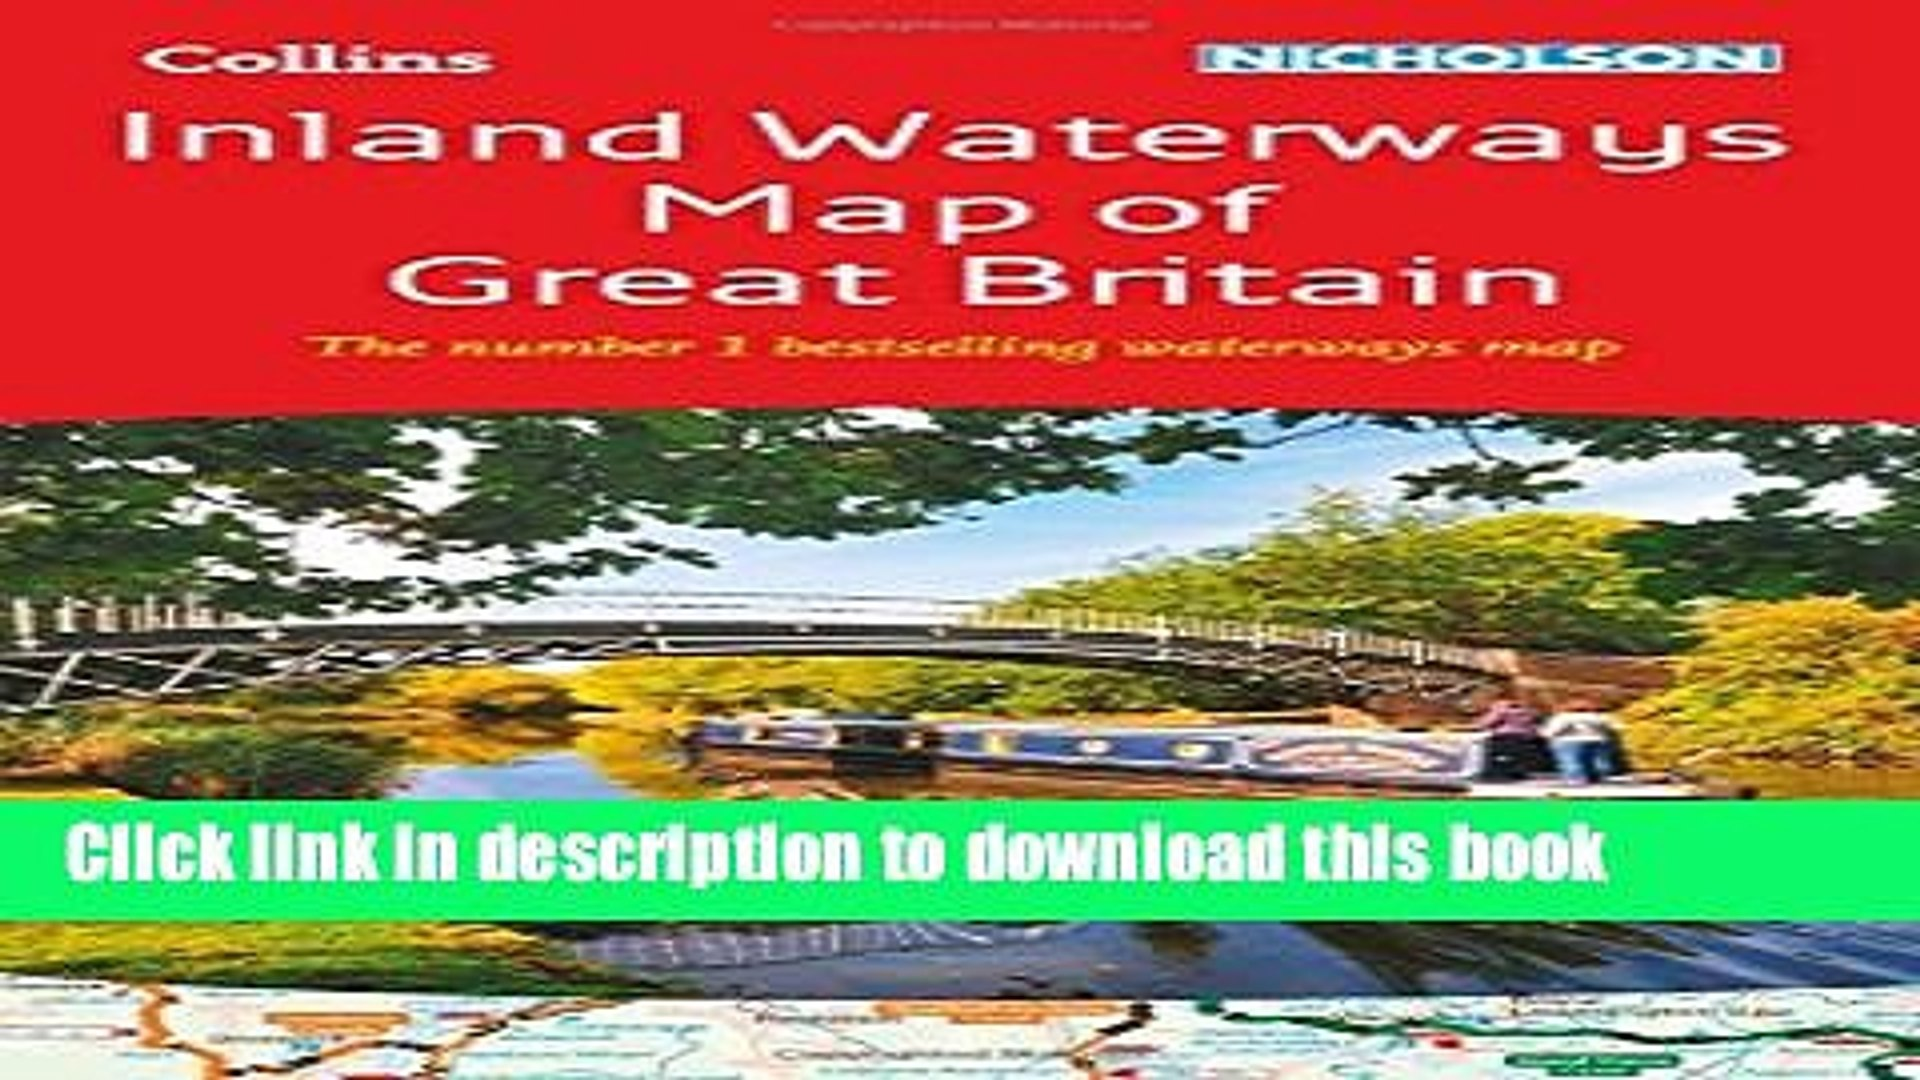 [Download] Collins Nicholson Inland Waterways Map of Great Britain  Paperback Collection